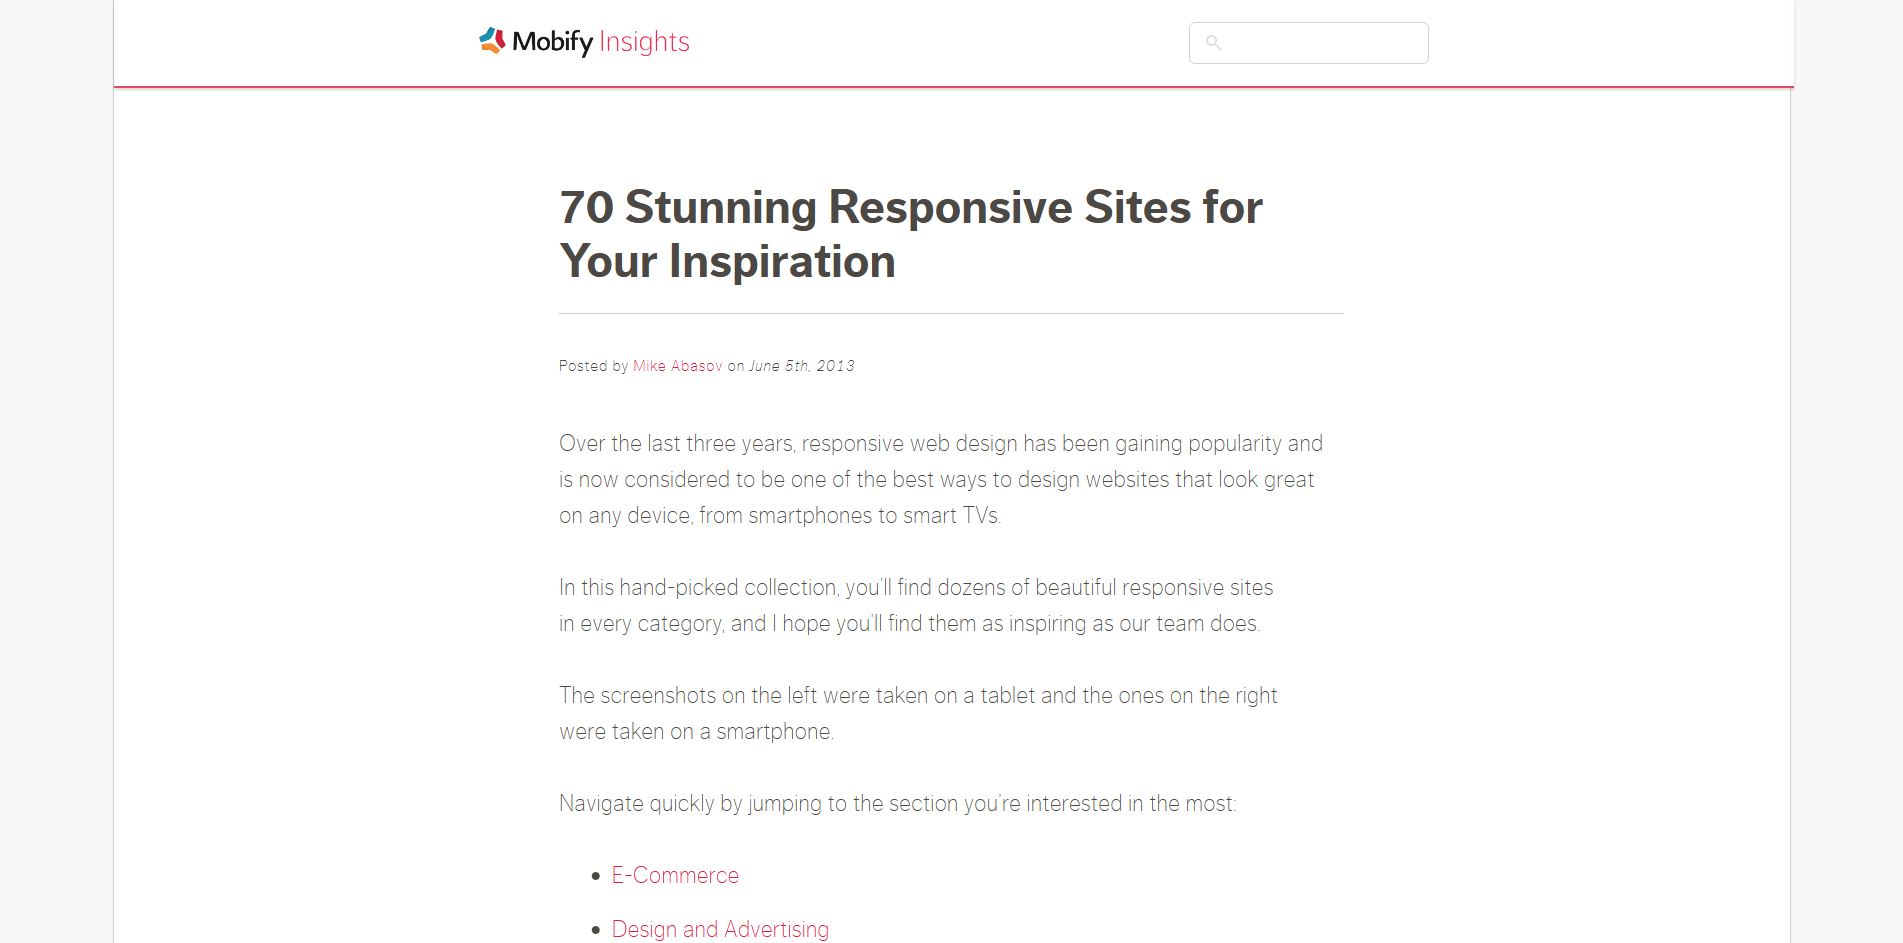 400 websites that showcase responsive design ugurus the longest list found on this article mobify s list focuses on apparel and clothing businesses that have worked hard at making an impact on potential